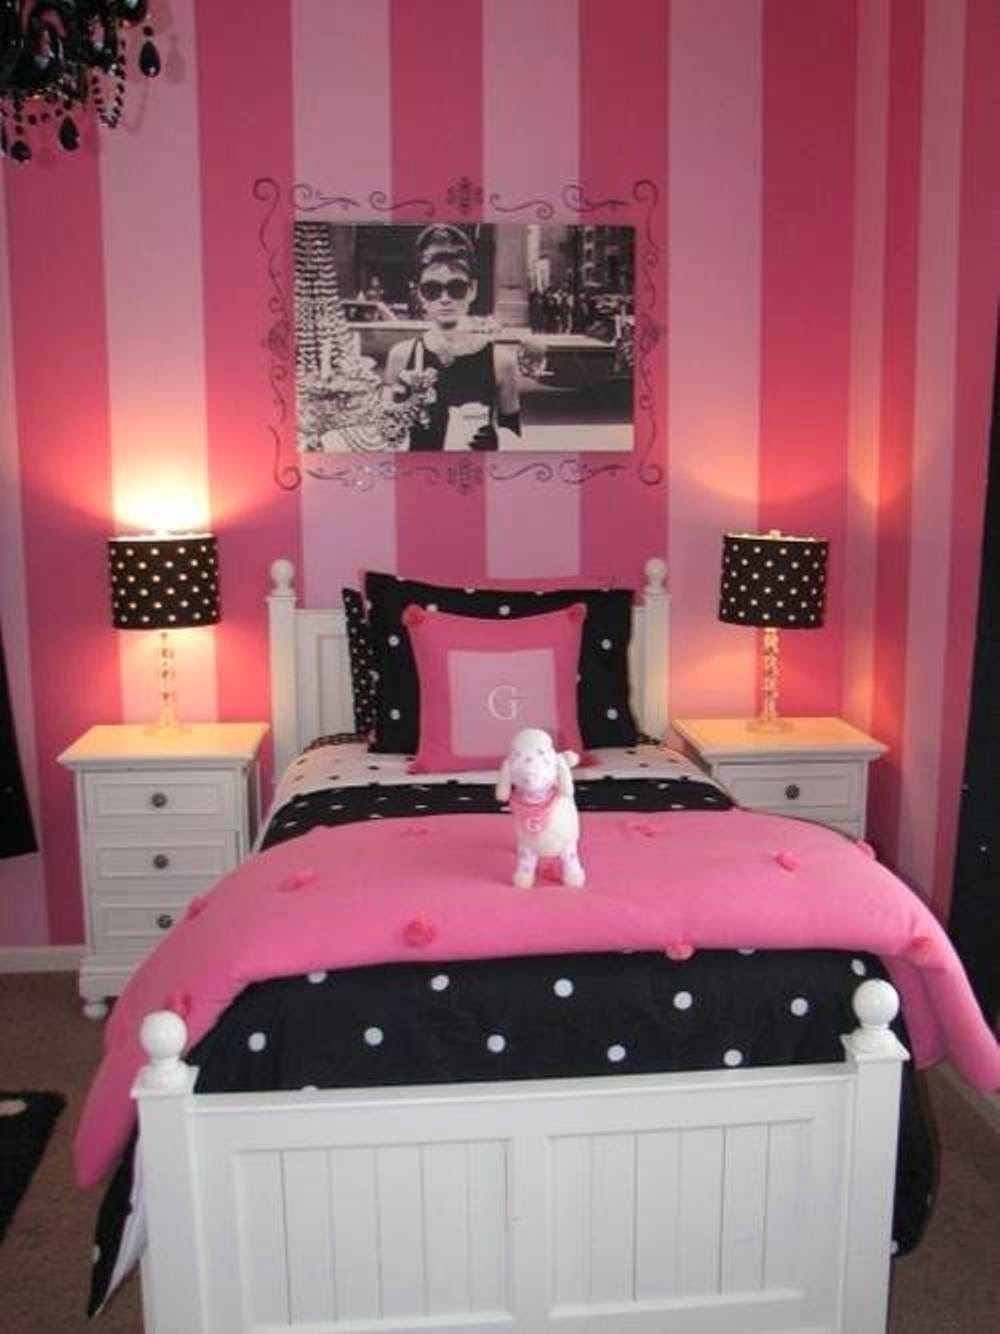 Designs For Girls Rooms: Todoworld